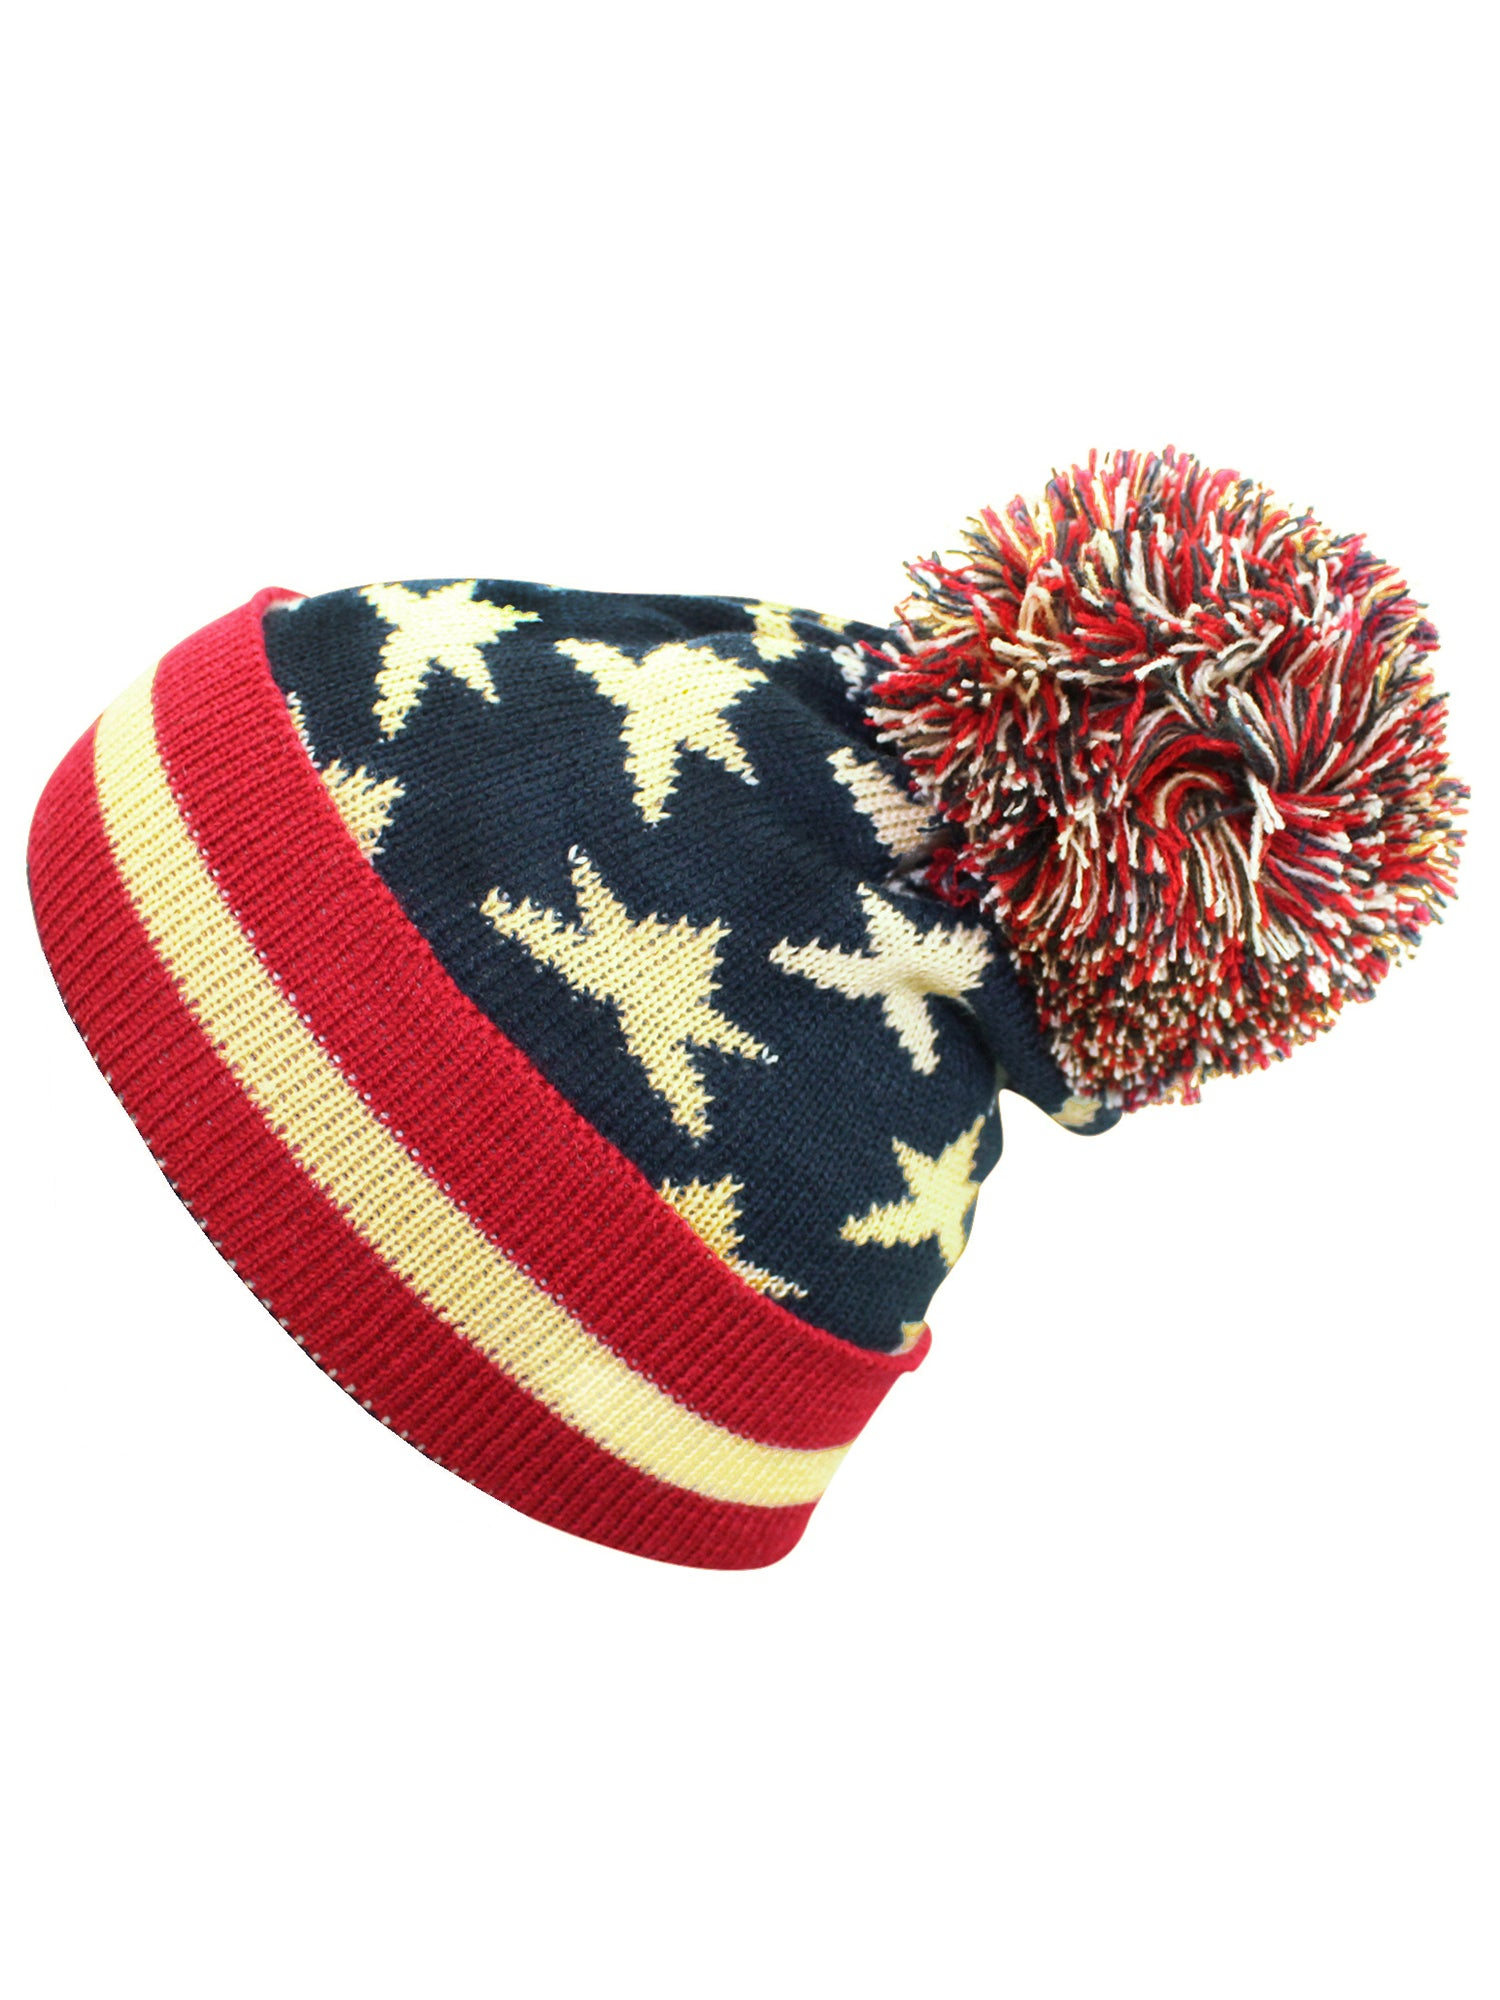 e86b24907a7 Vintage Red White   Blue American Flag Knit Pom Pom Beanie Hat ...